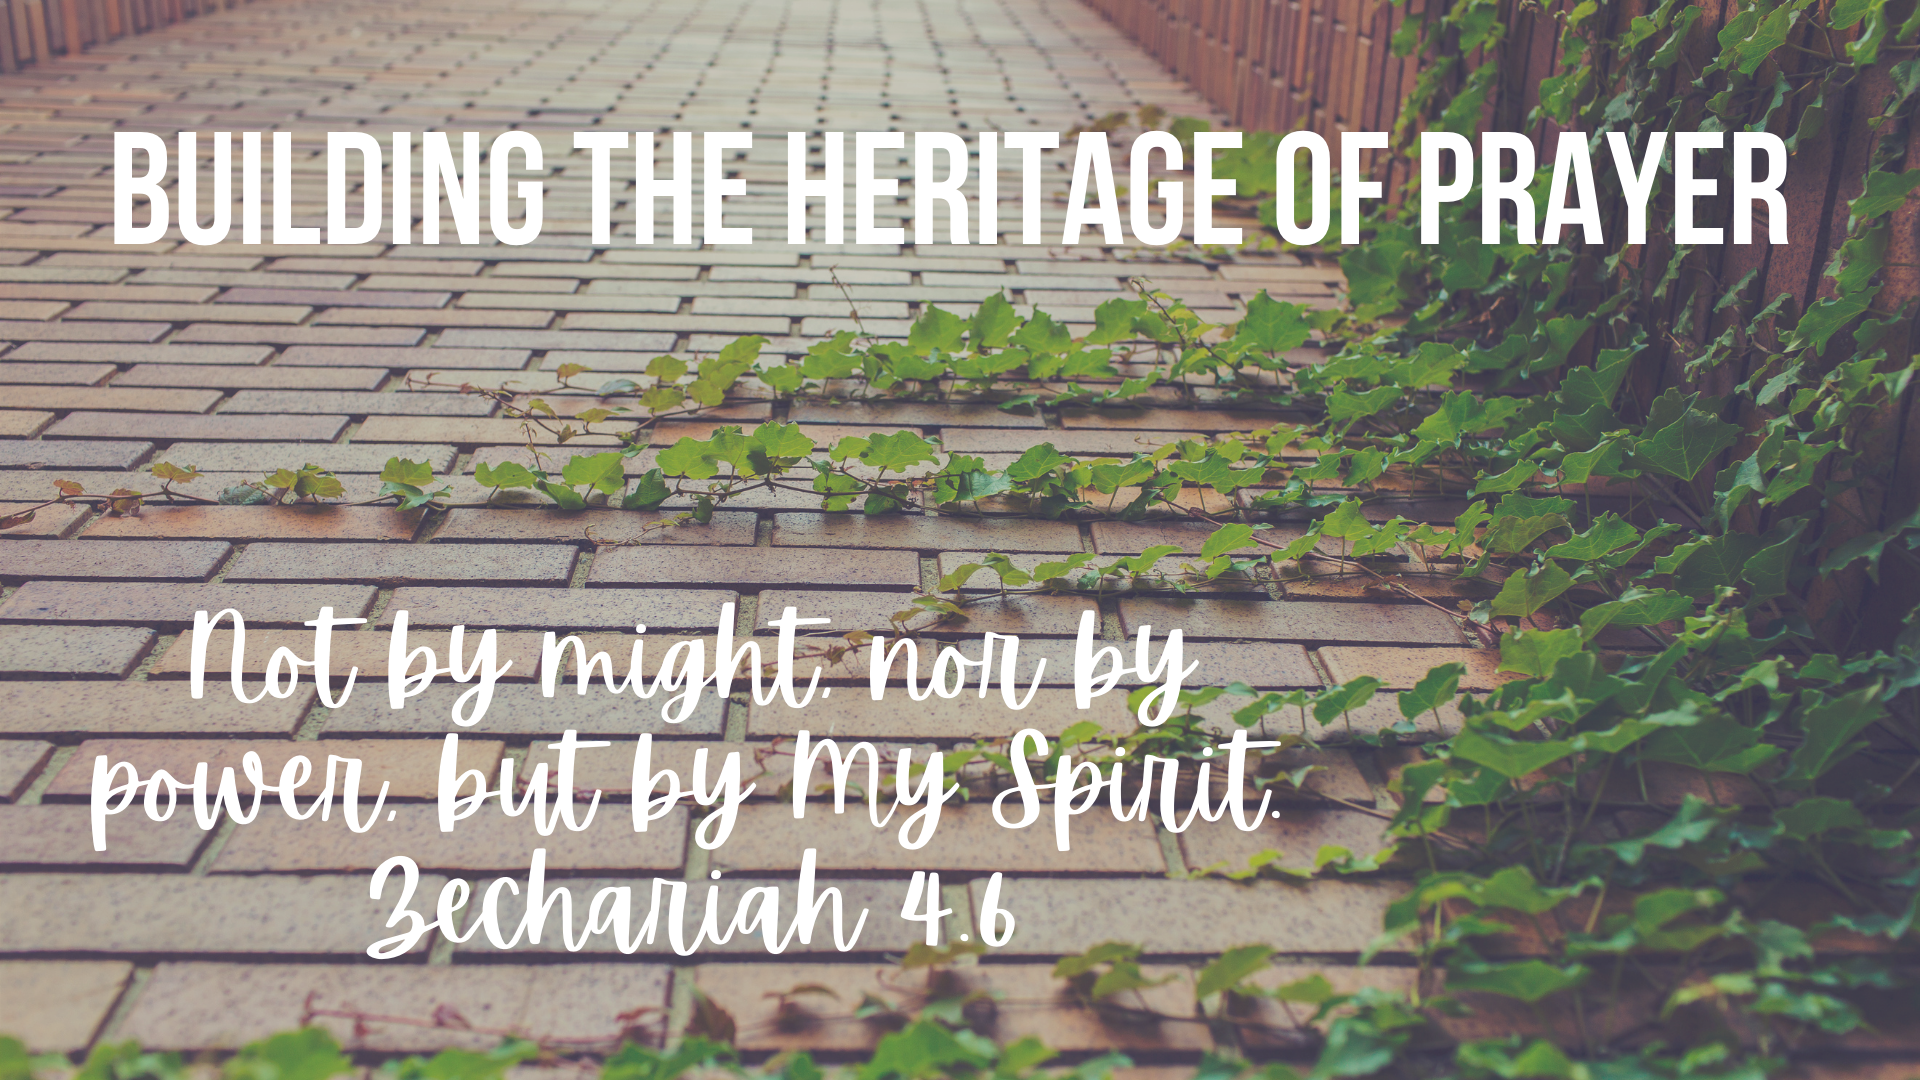 Building-the-Heritage-of-Prayer-Not-by-might-nor-by-power-but-by-My-Spirit.-Zechariah-4.6.